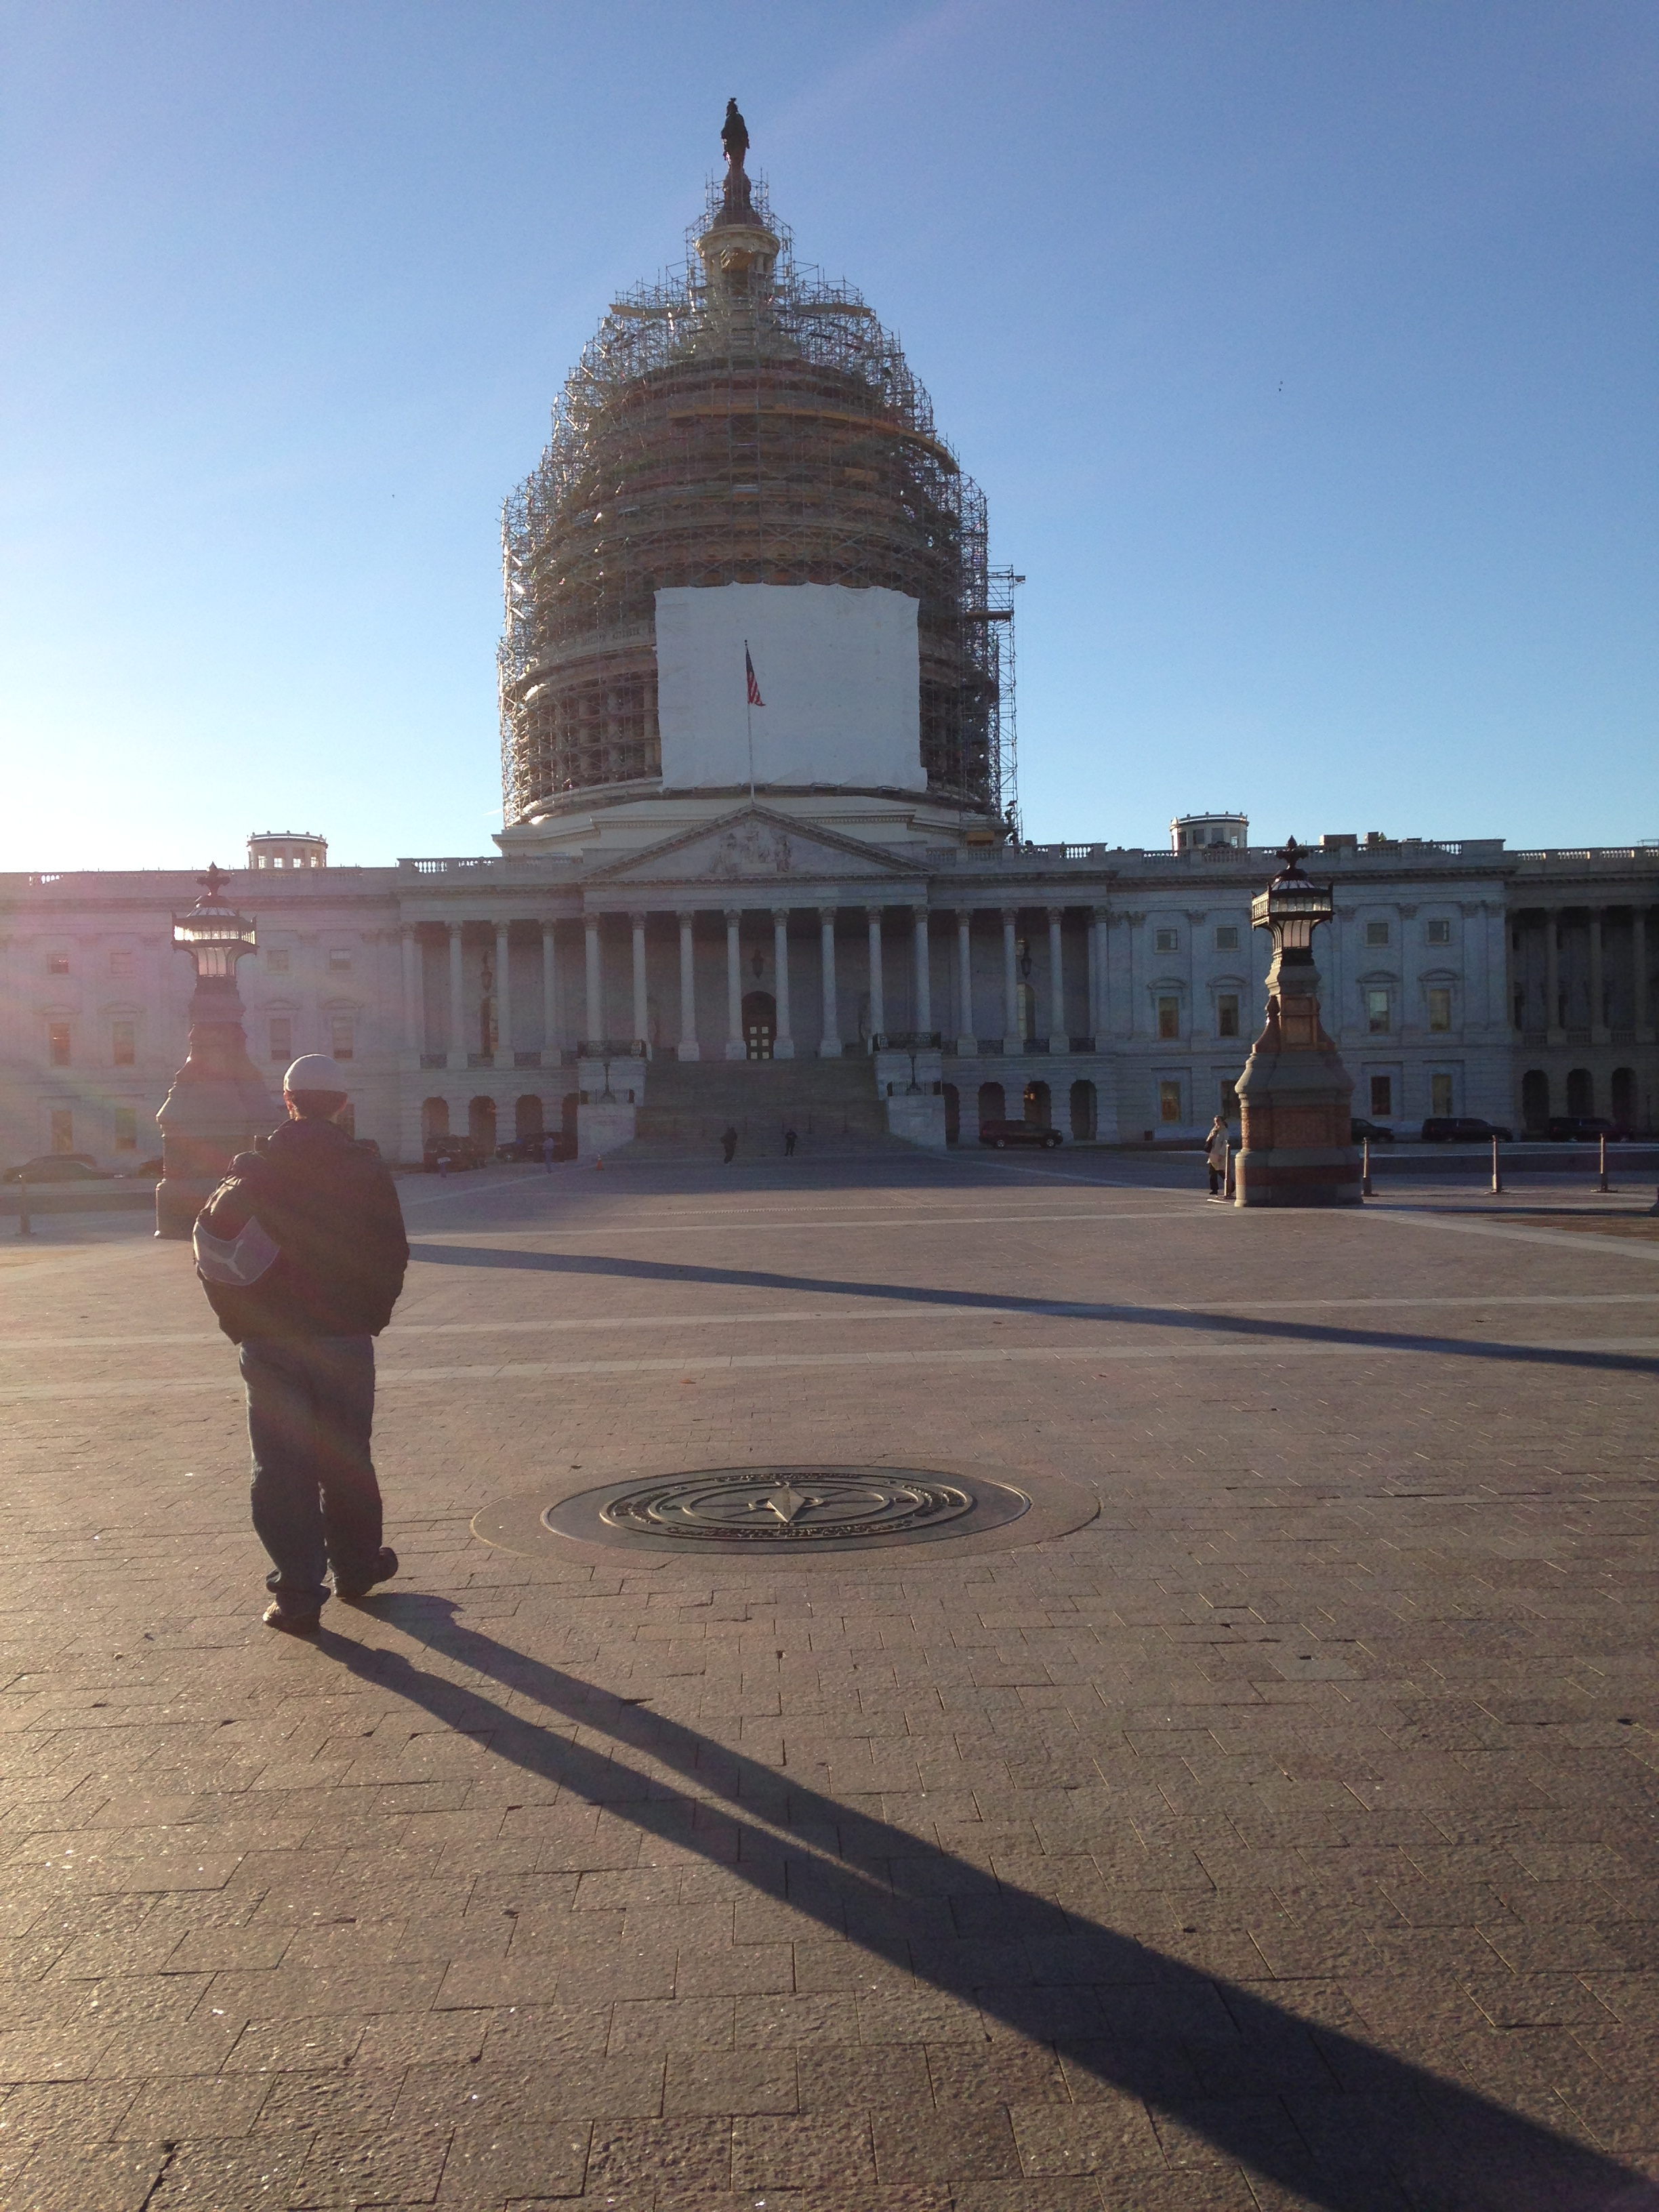 20141112 205246960 ios - Visitar el Congreso de Estados Unidos en Washington DC